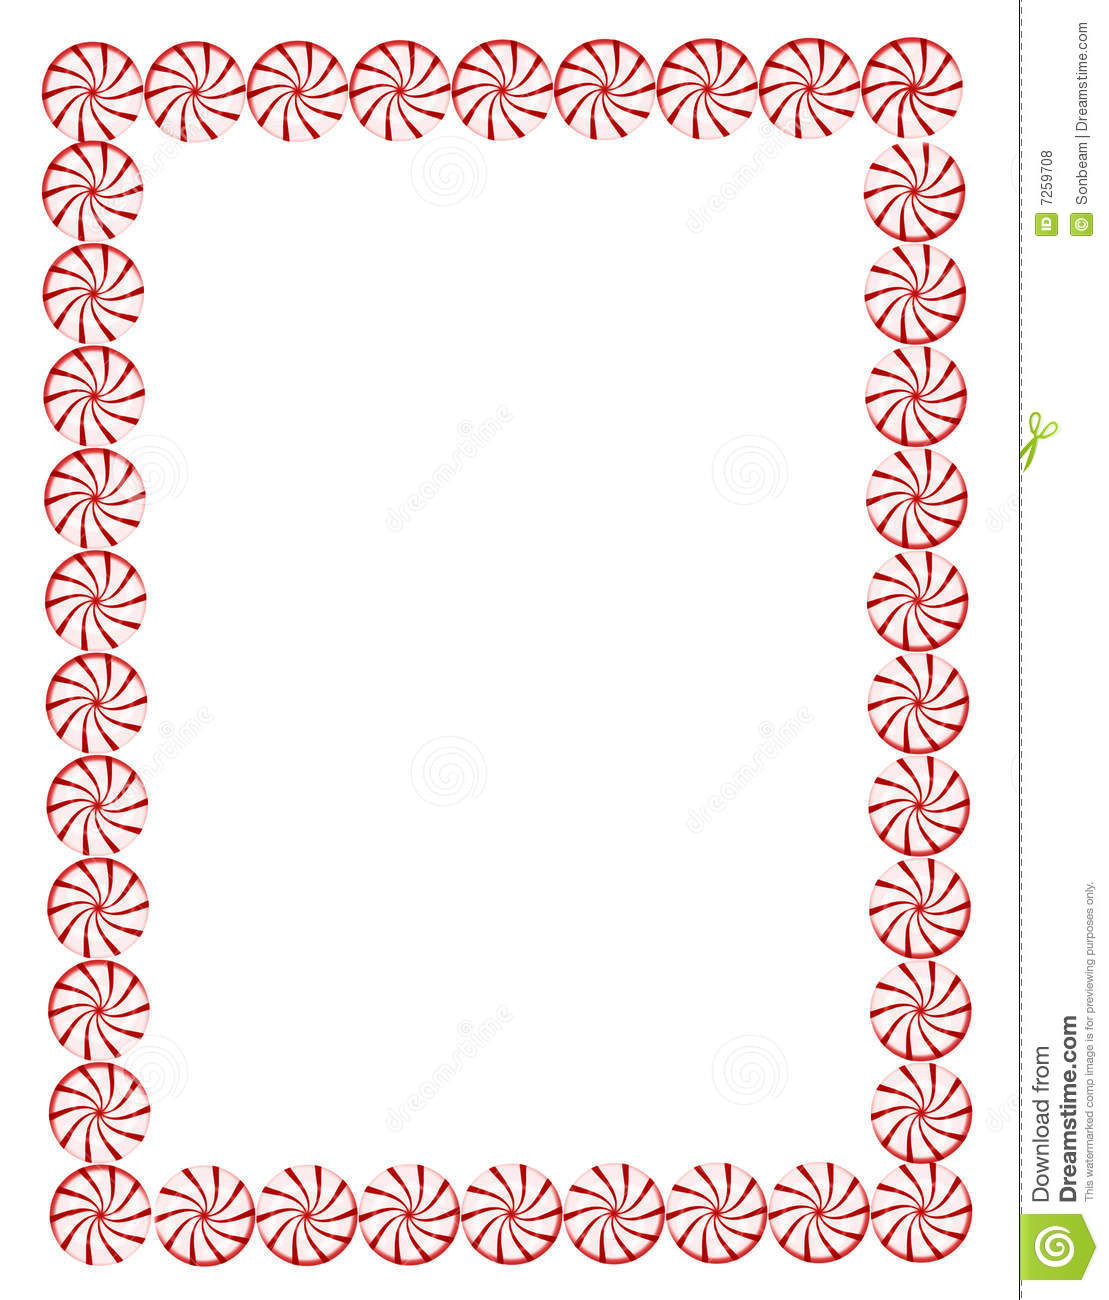 Christmas Candy Border  Royalty Free Stock s Christmas candy border Image